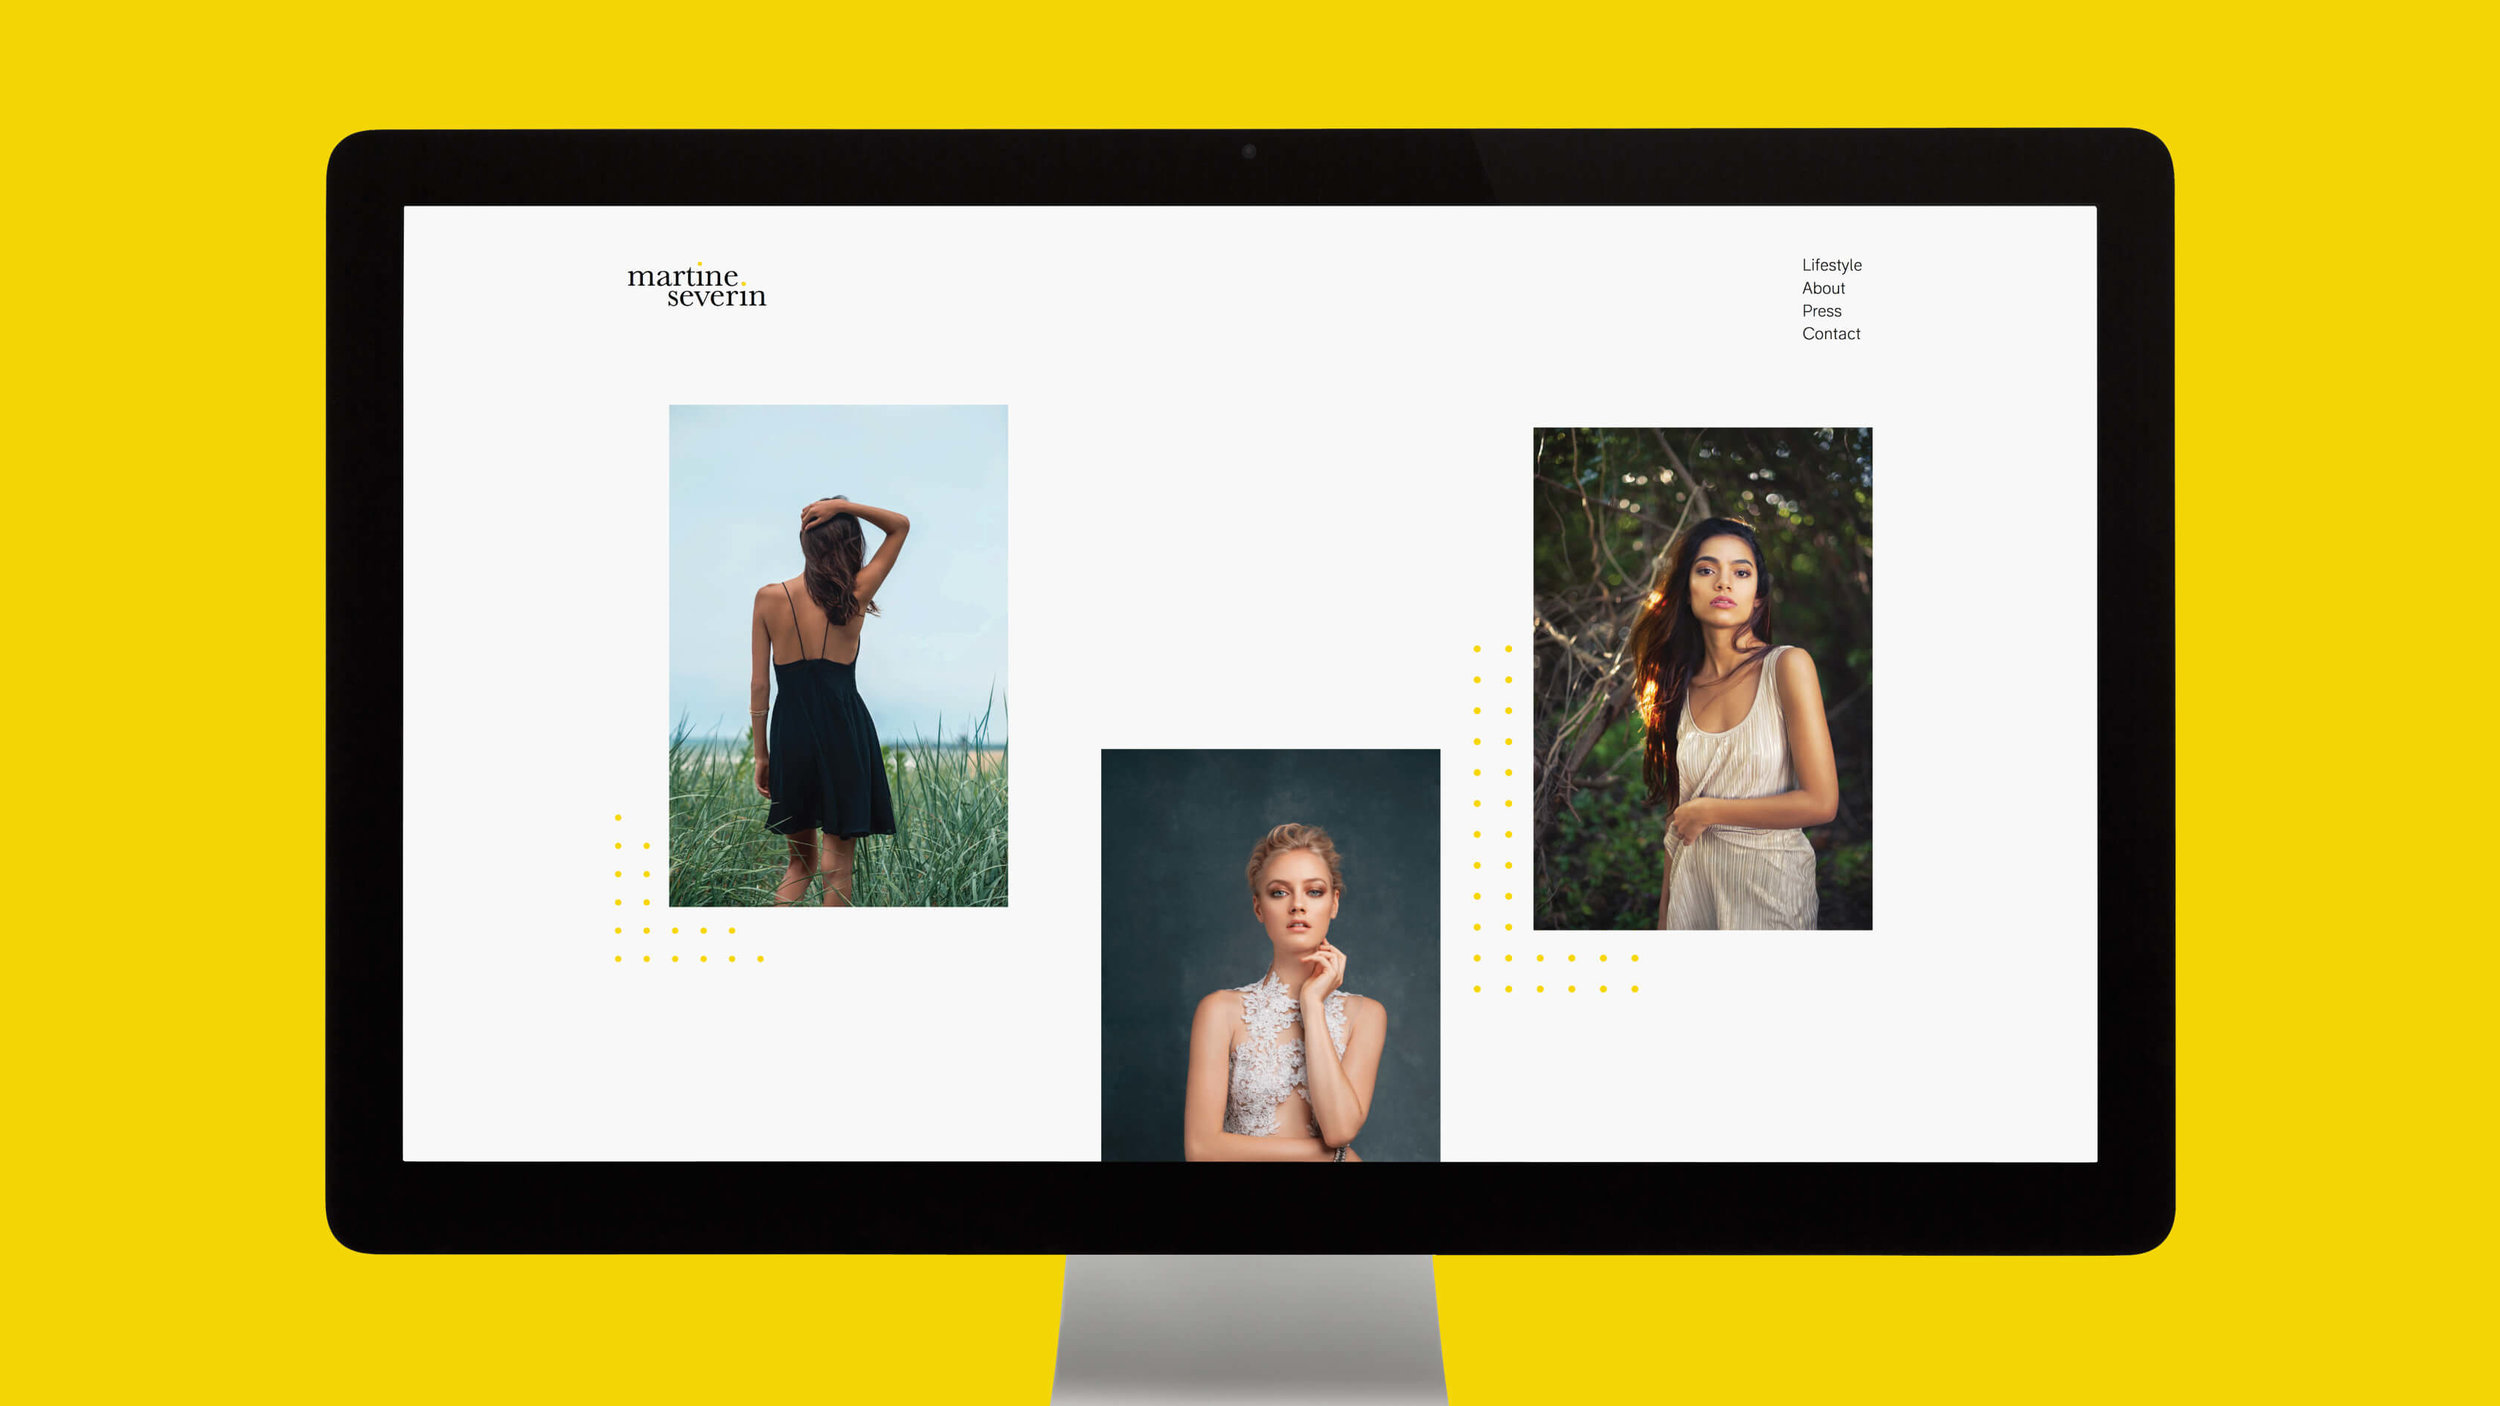 Martine Severin website mock-up